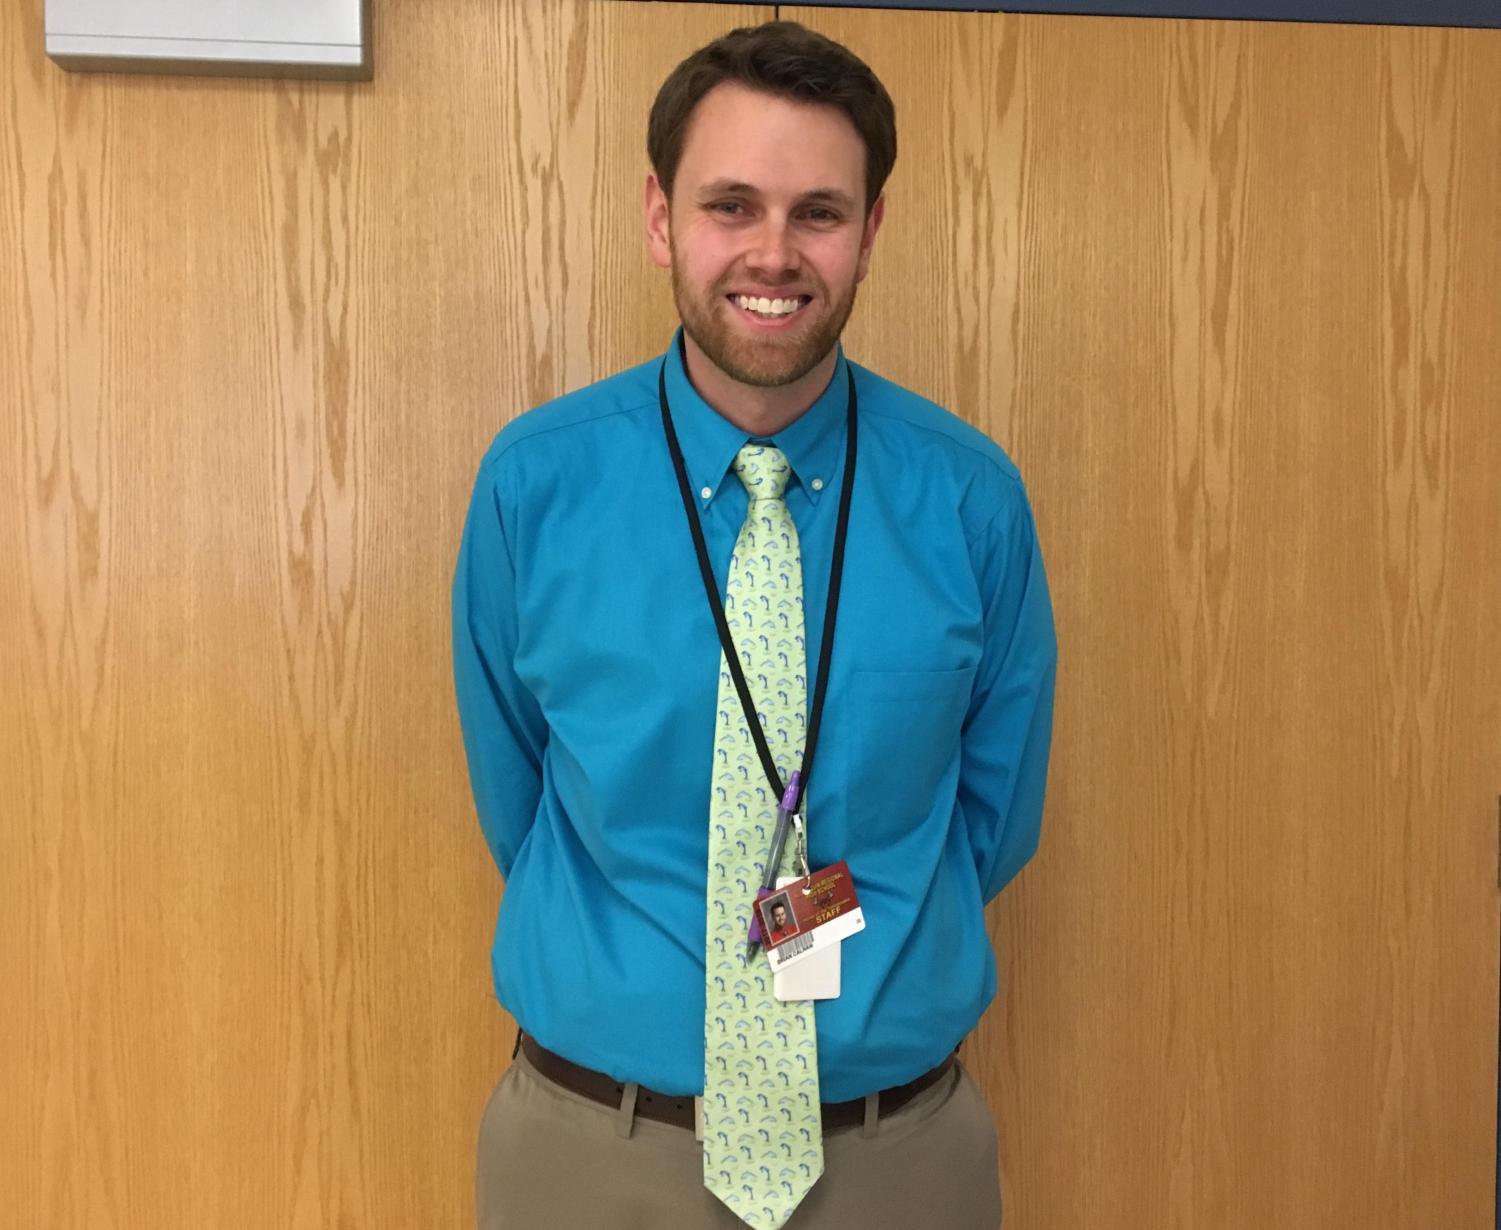 Math teacher Brian Calnan joined the Algonquin tech team, hoping to promote technology use in the classroom.